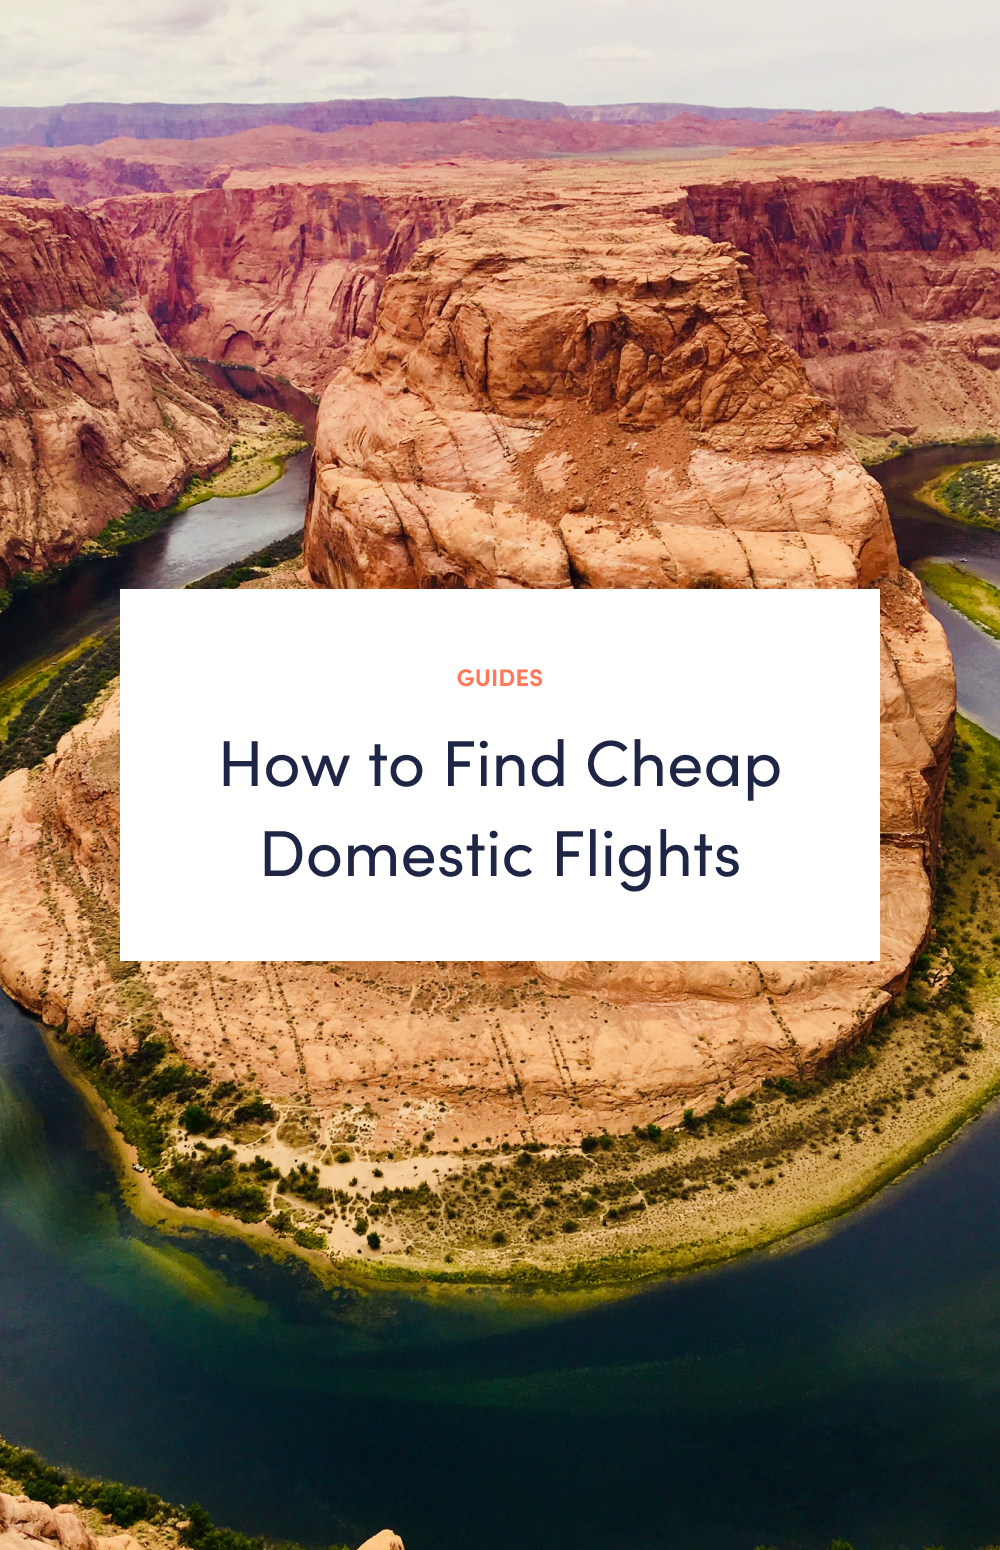 Domestic flight booking tips to save you money. #cheapflights #travelhacks #traveltips #flightdeals #savemoney #domestictravel #domesticflights #travelinspiration #travelblog #travelguide